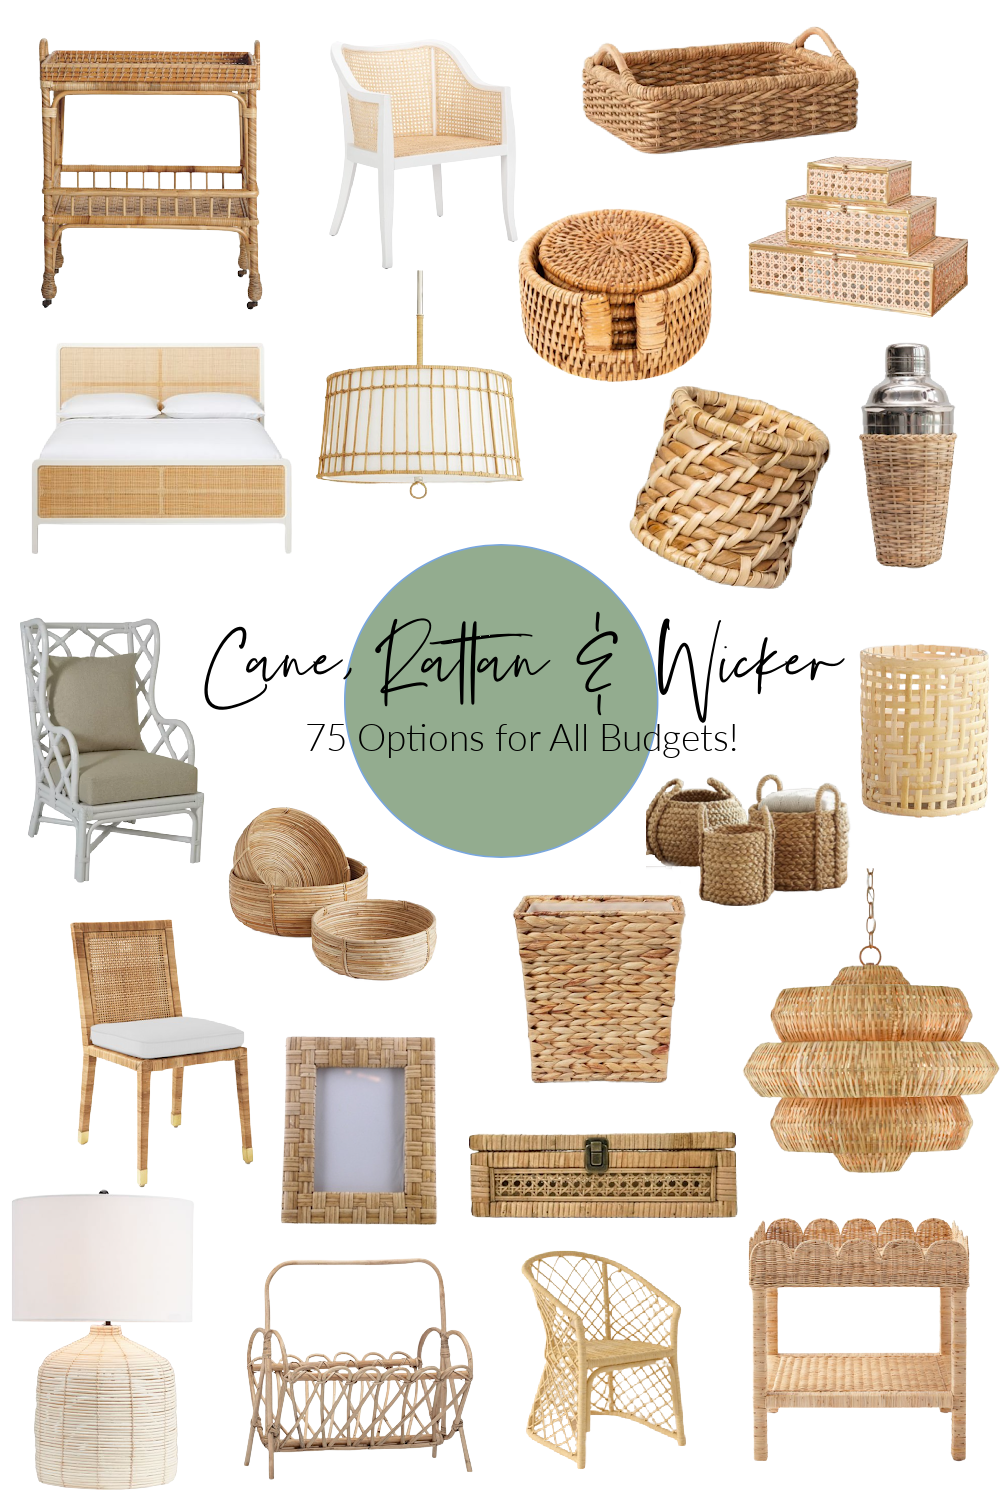 Rattan Home Decor - Decorating with Rattan Furniture - Wicker and Bamboo Furniture - Cane Rattan Chair - Rattan Furniture - Bamboo Rattan Wicker - Cane Bamboo Furniture - Rattan Accessories - Rattan Decor Ideas